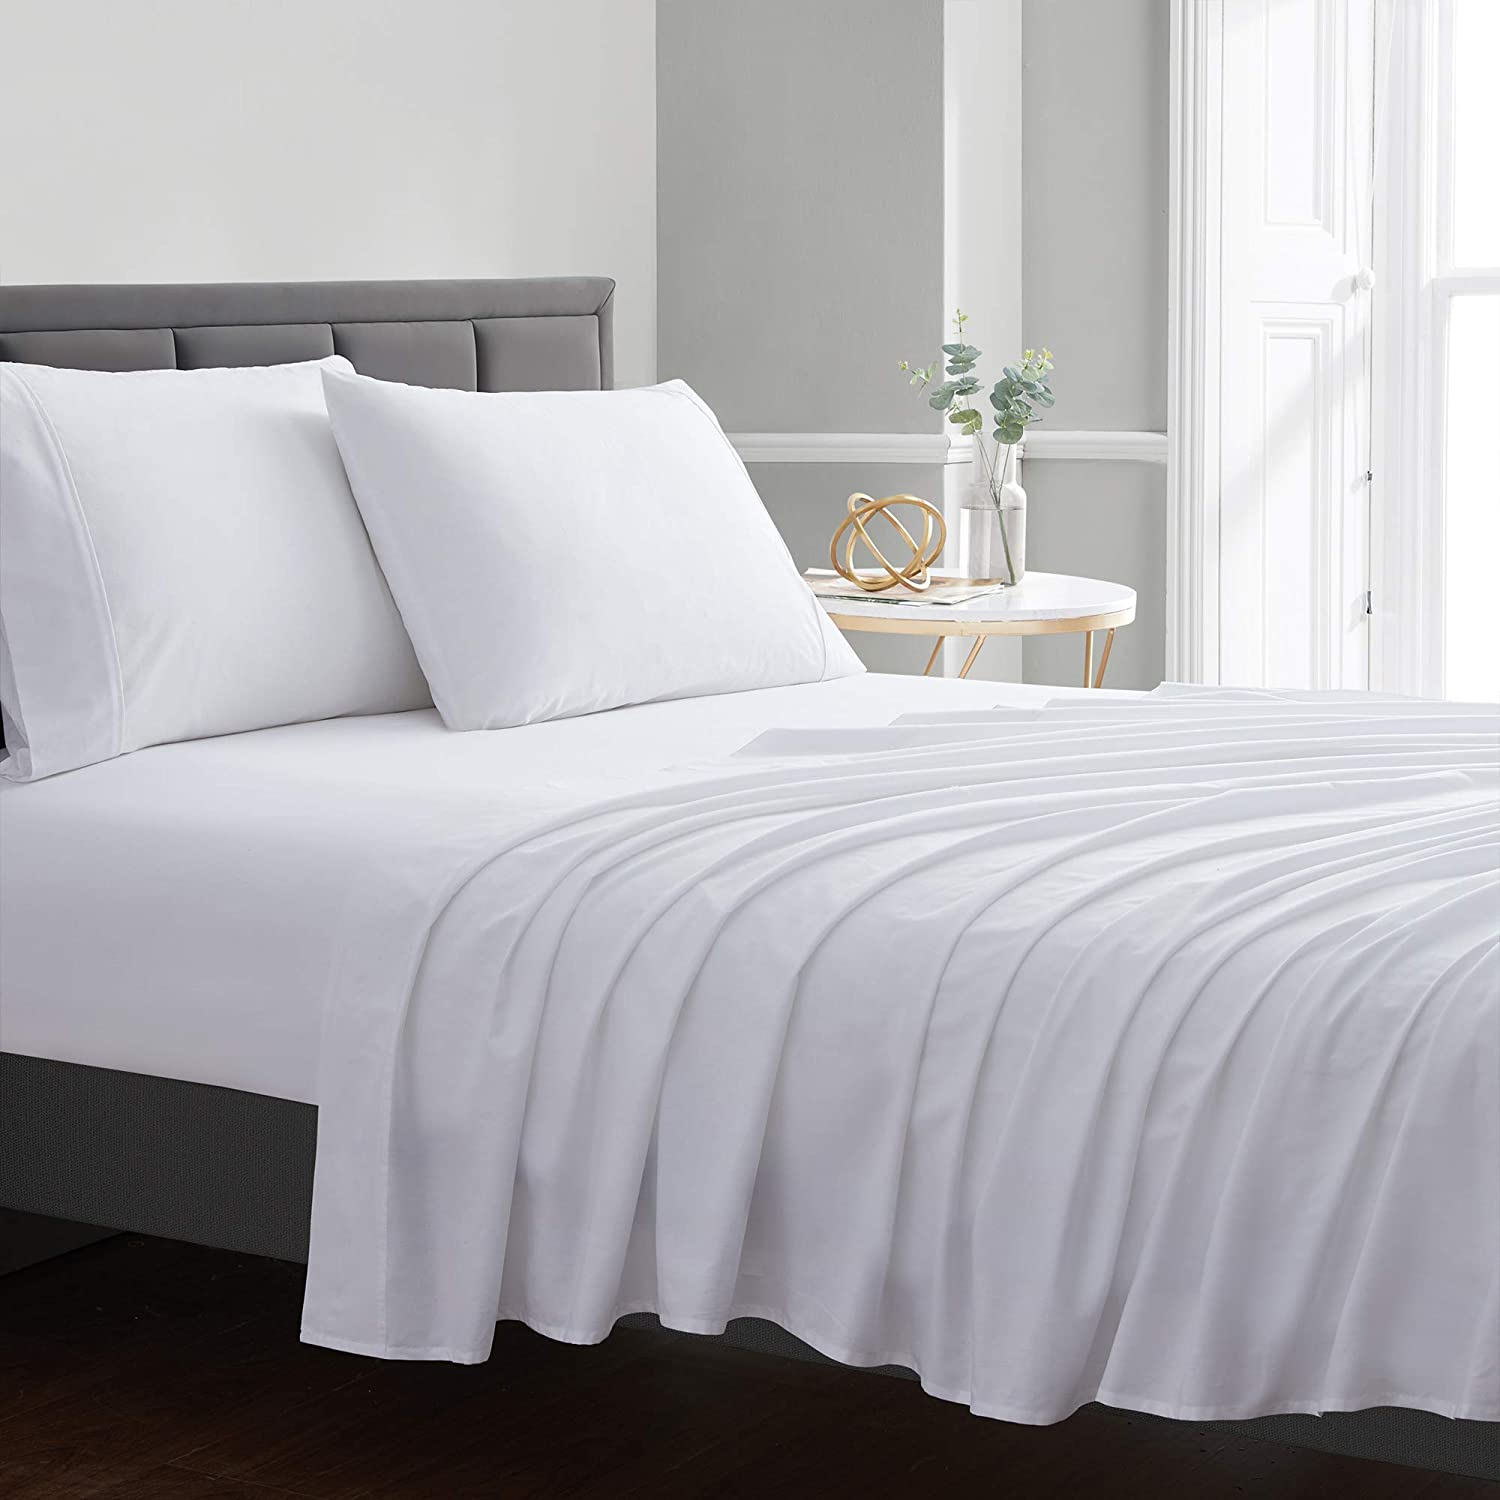 Sweet Home Collection Pure Cotton Soft Bed Sheet Set - Premium Soft & Breathable Luxury Staple Quality Sheeting - 100% Cotton Sheet Set - Queen, White